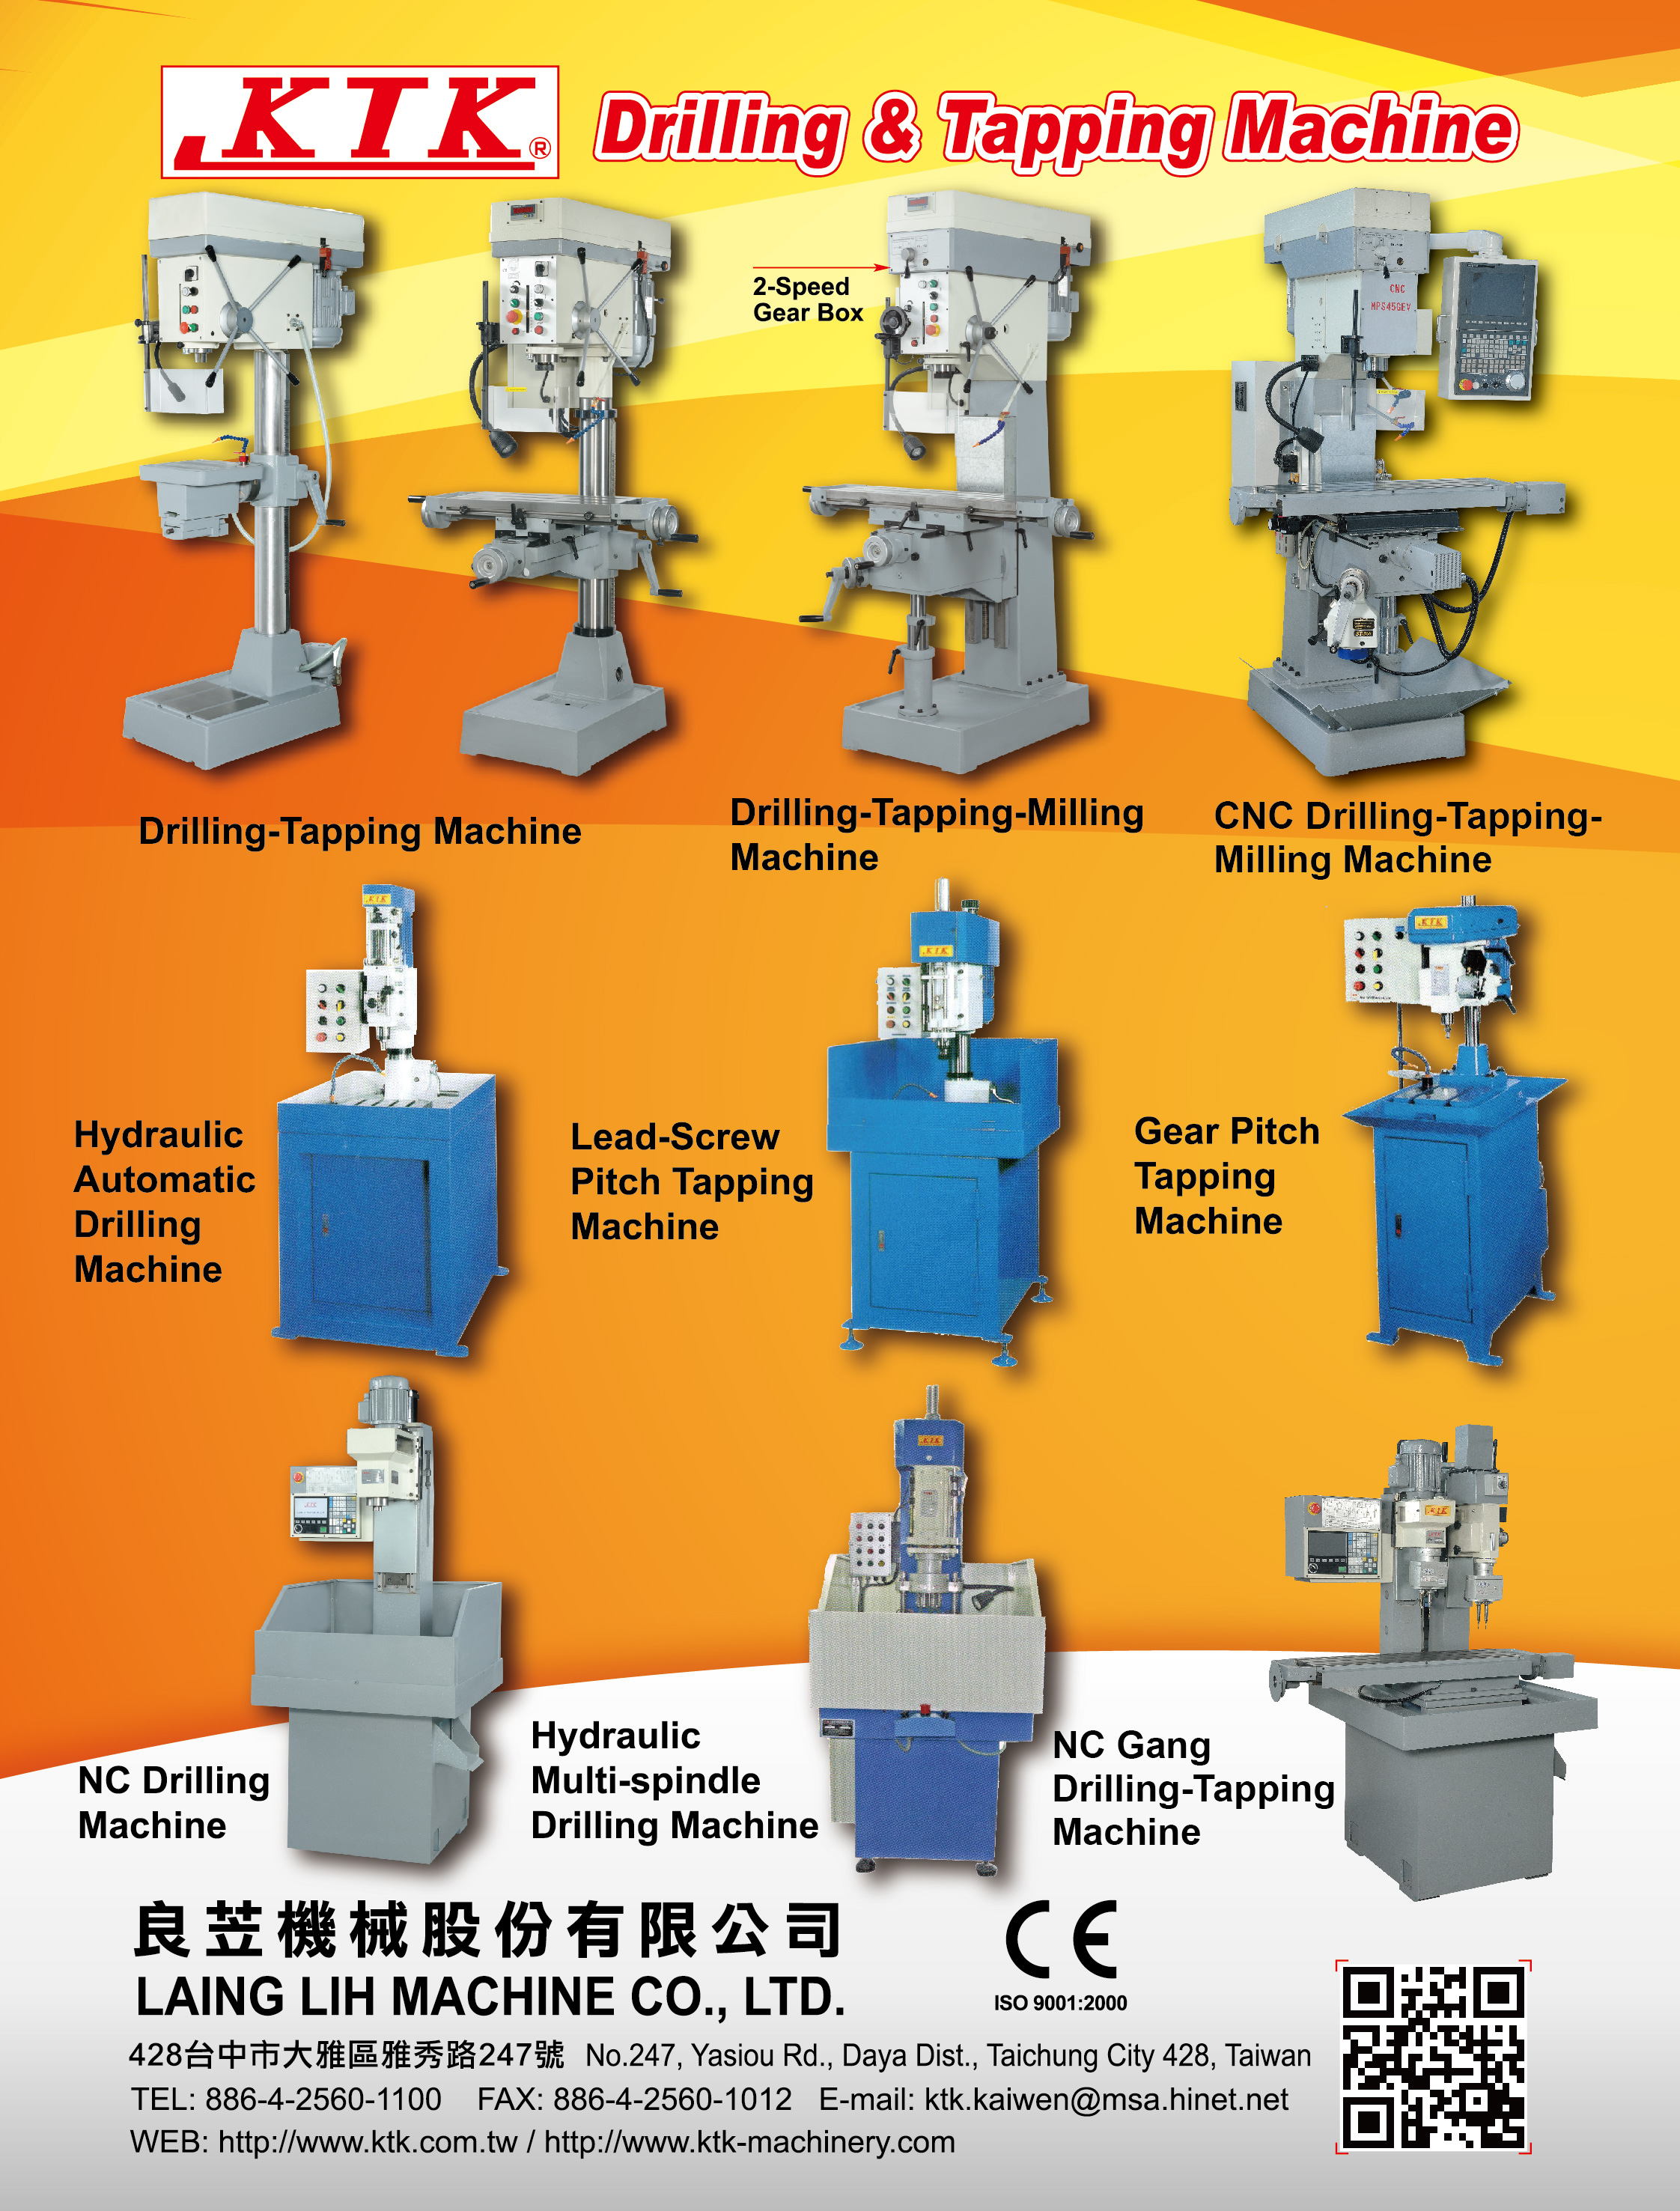 LIANG LIH MACHINE CO., LTD.